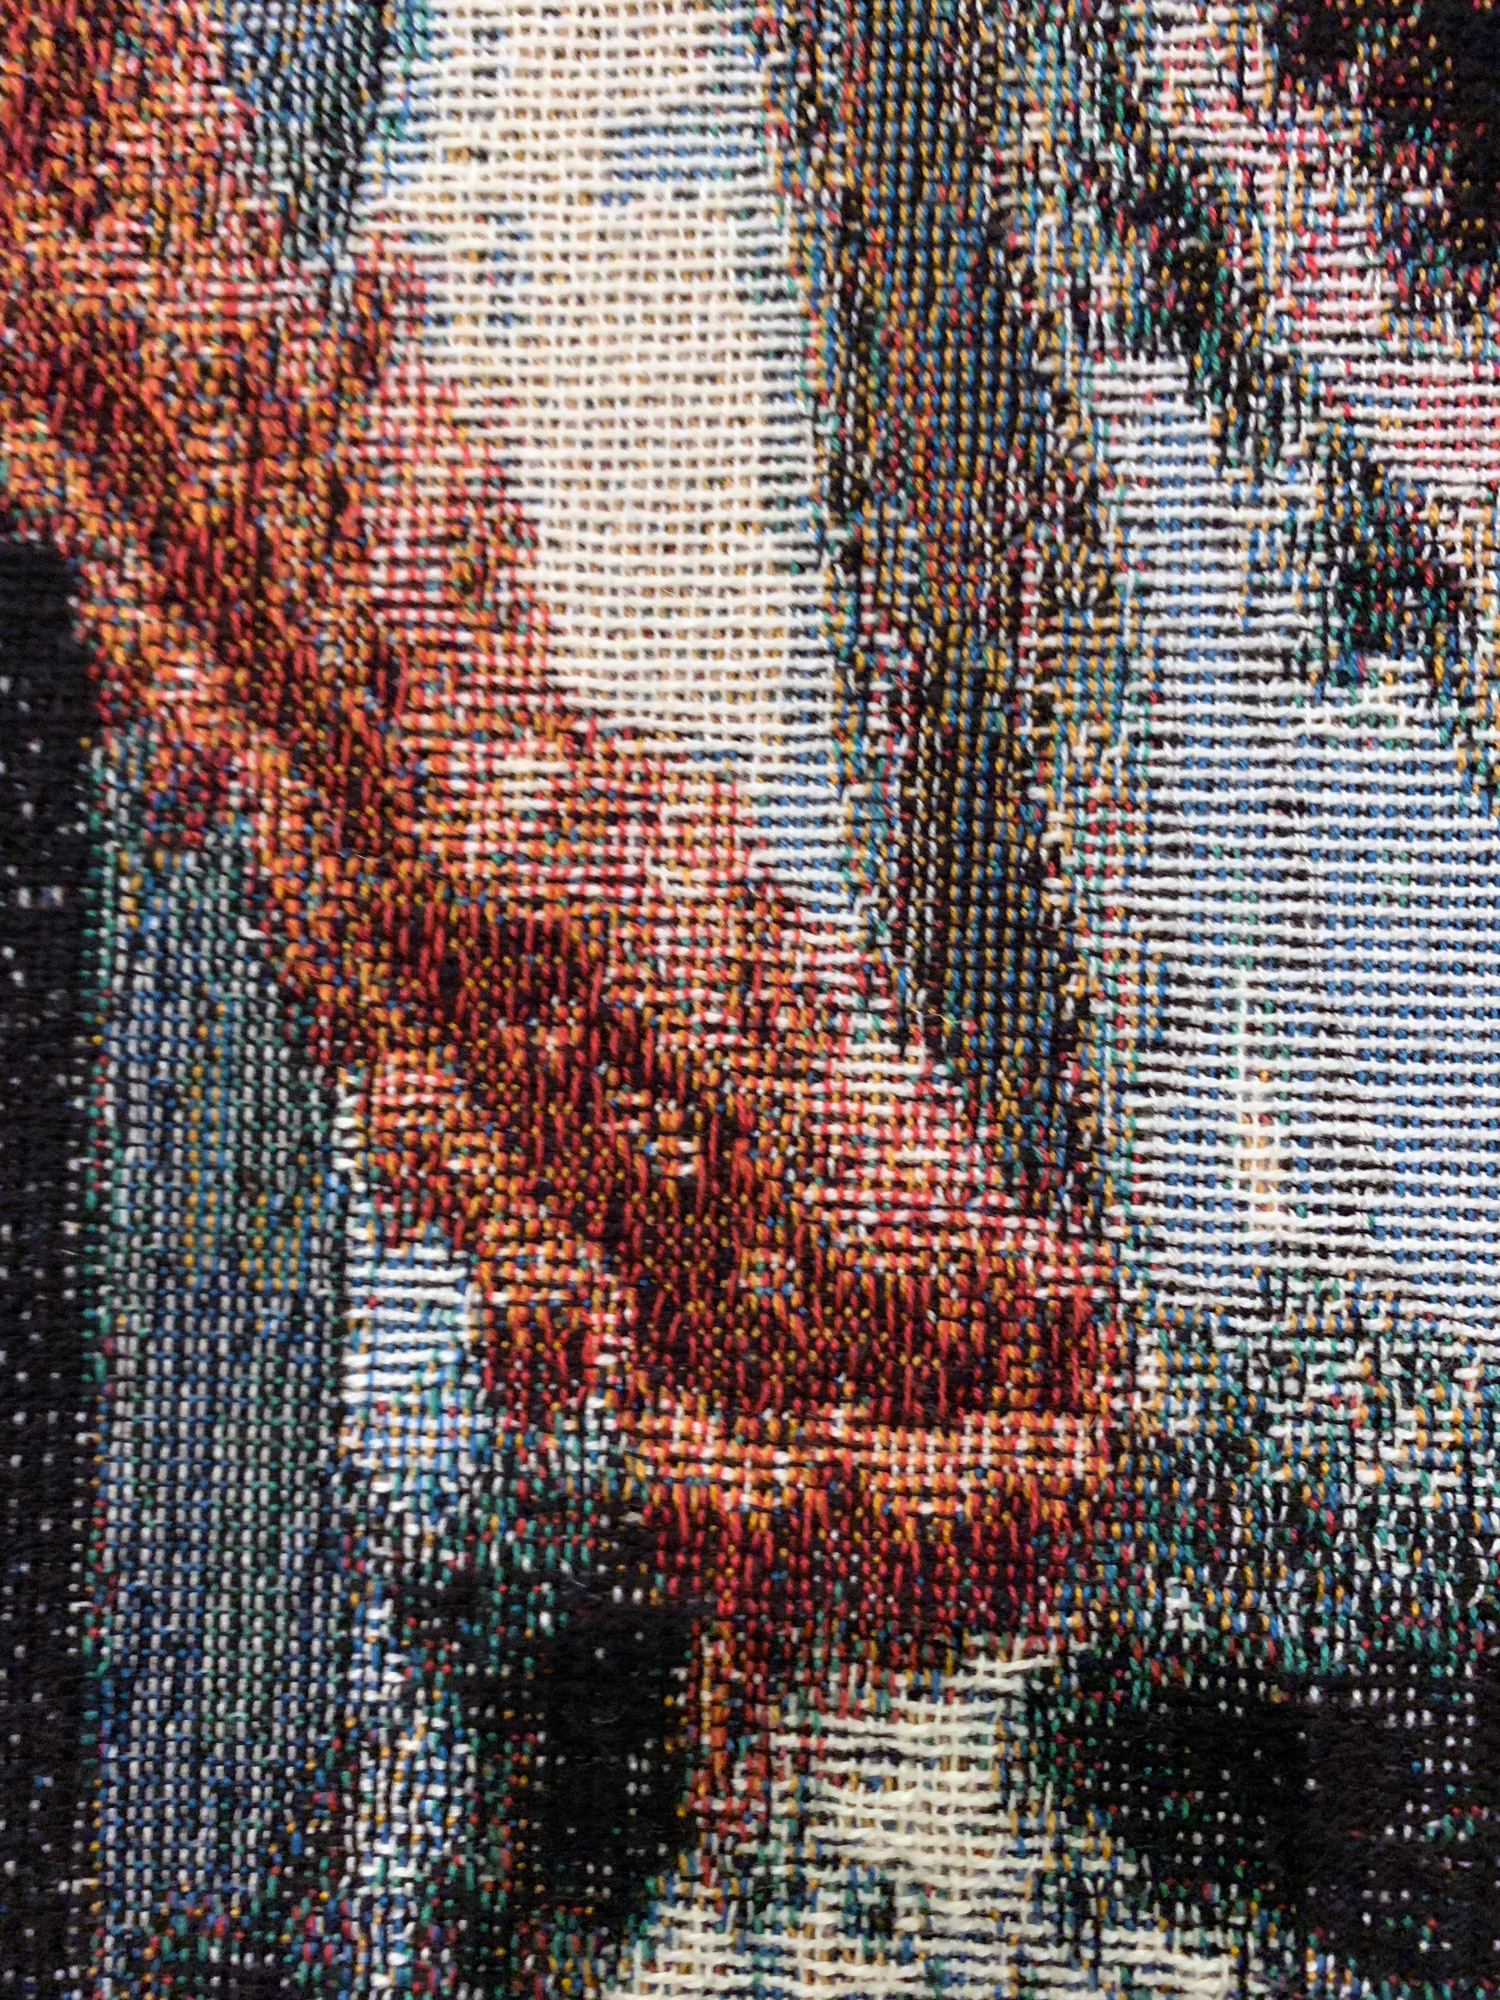 x+7J@c, 2019 (detail) 190cm x 140cm Dye Cotton Tapestry